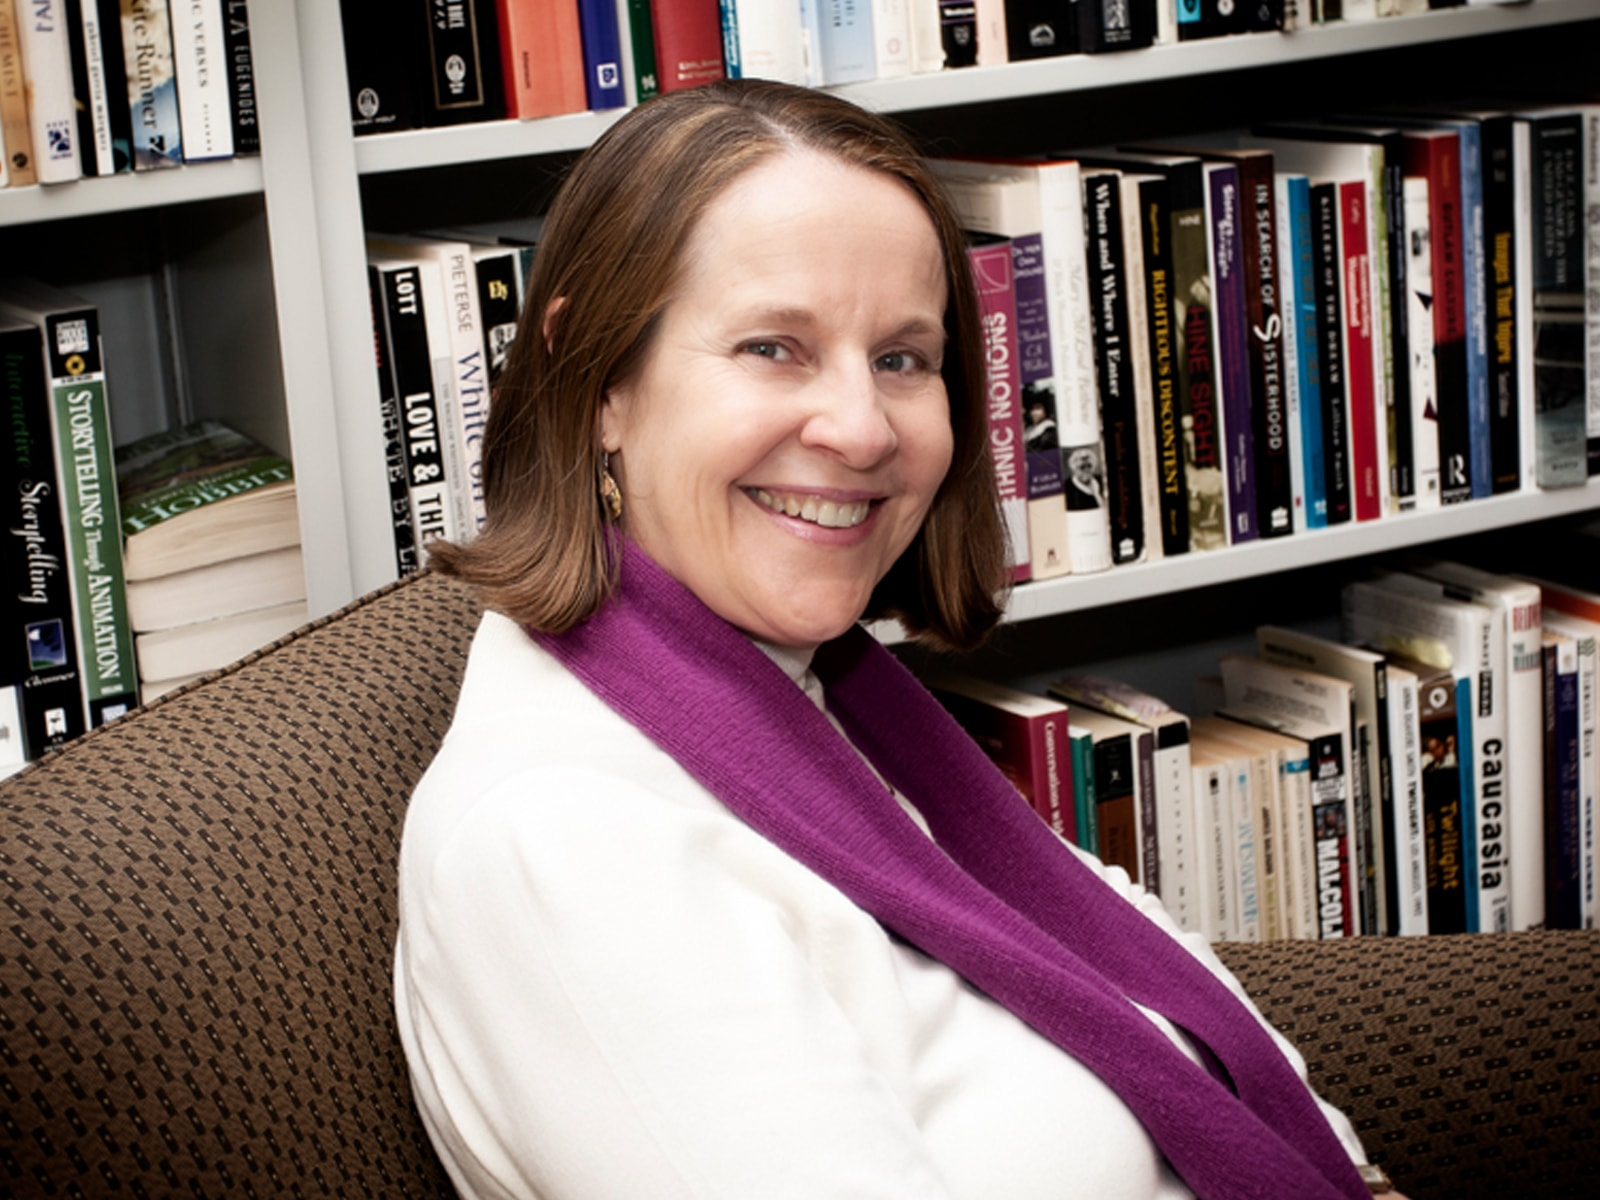 Portrait of DigiPen humanities professor Claire Joly in front of bookshelves in the campus library